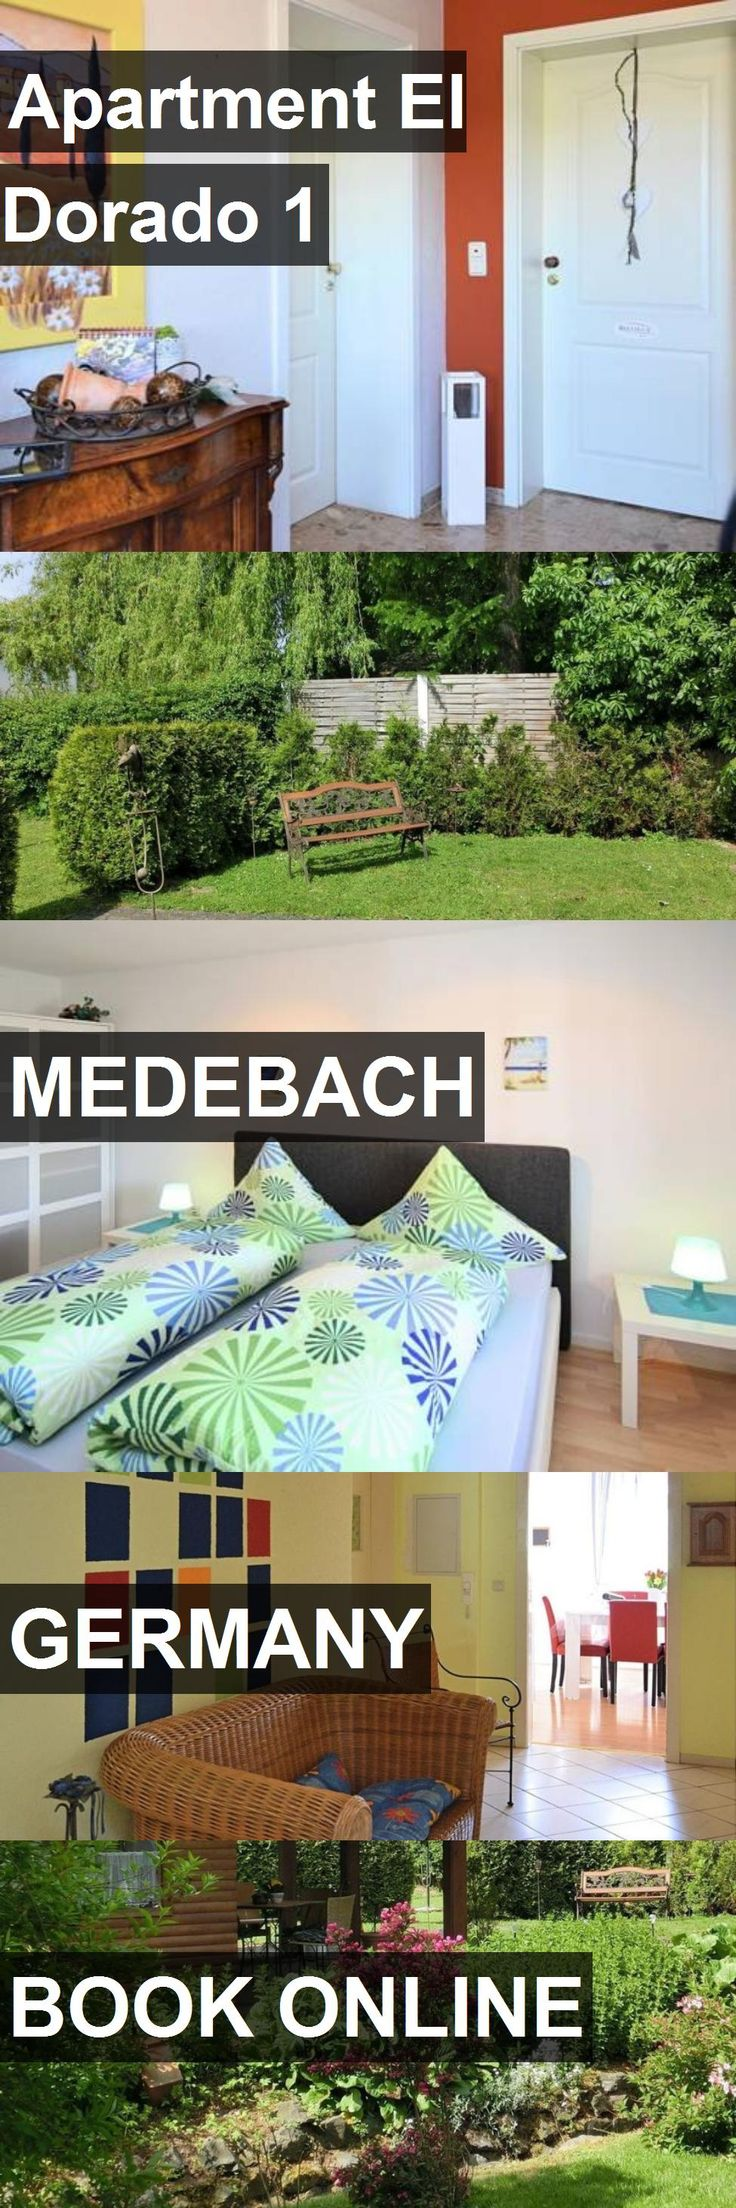 Hotel Apartment El Dorado 1 in Medebach, Germany. For more information, photos, reviews and best prices please follow the link. #Germany #Medebach #ApartmentElDorado1 #hotel #travel #vacation